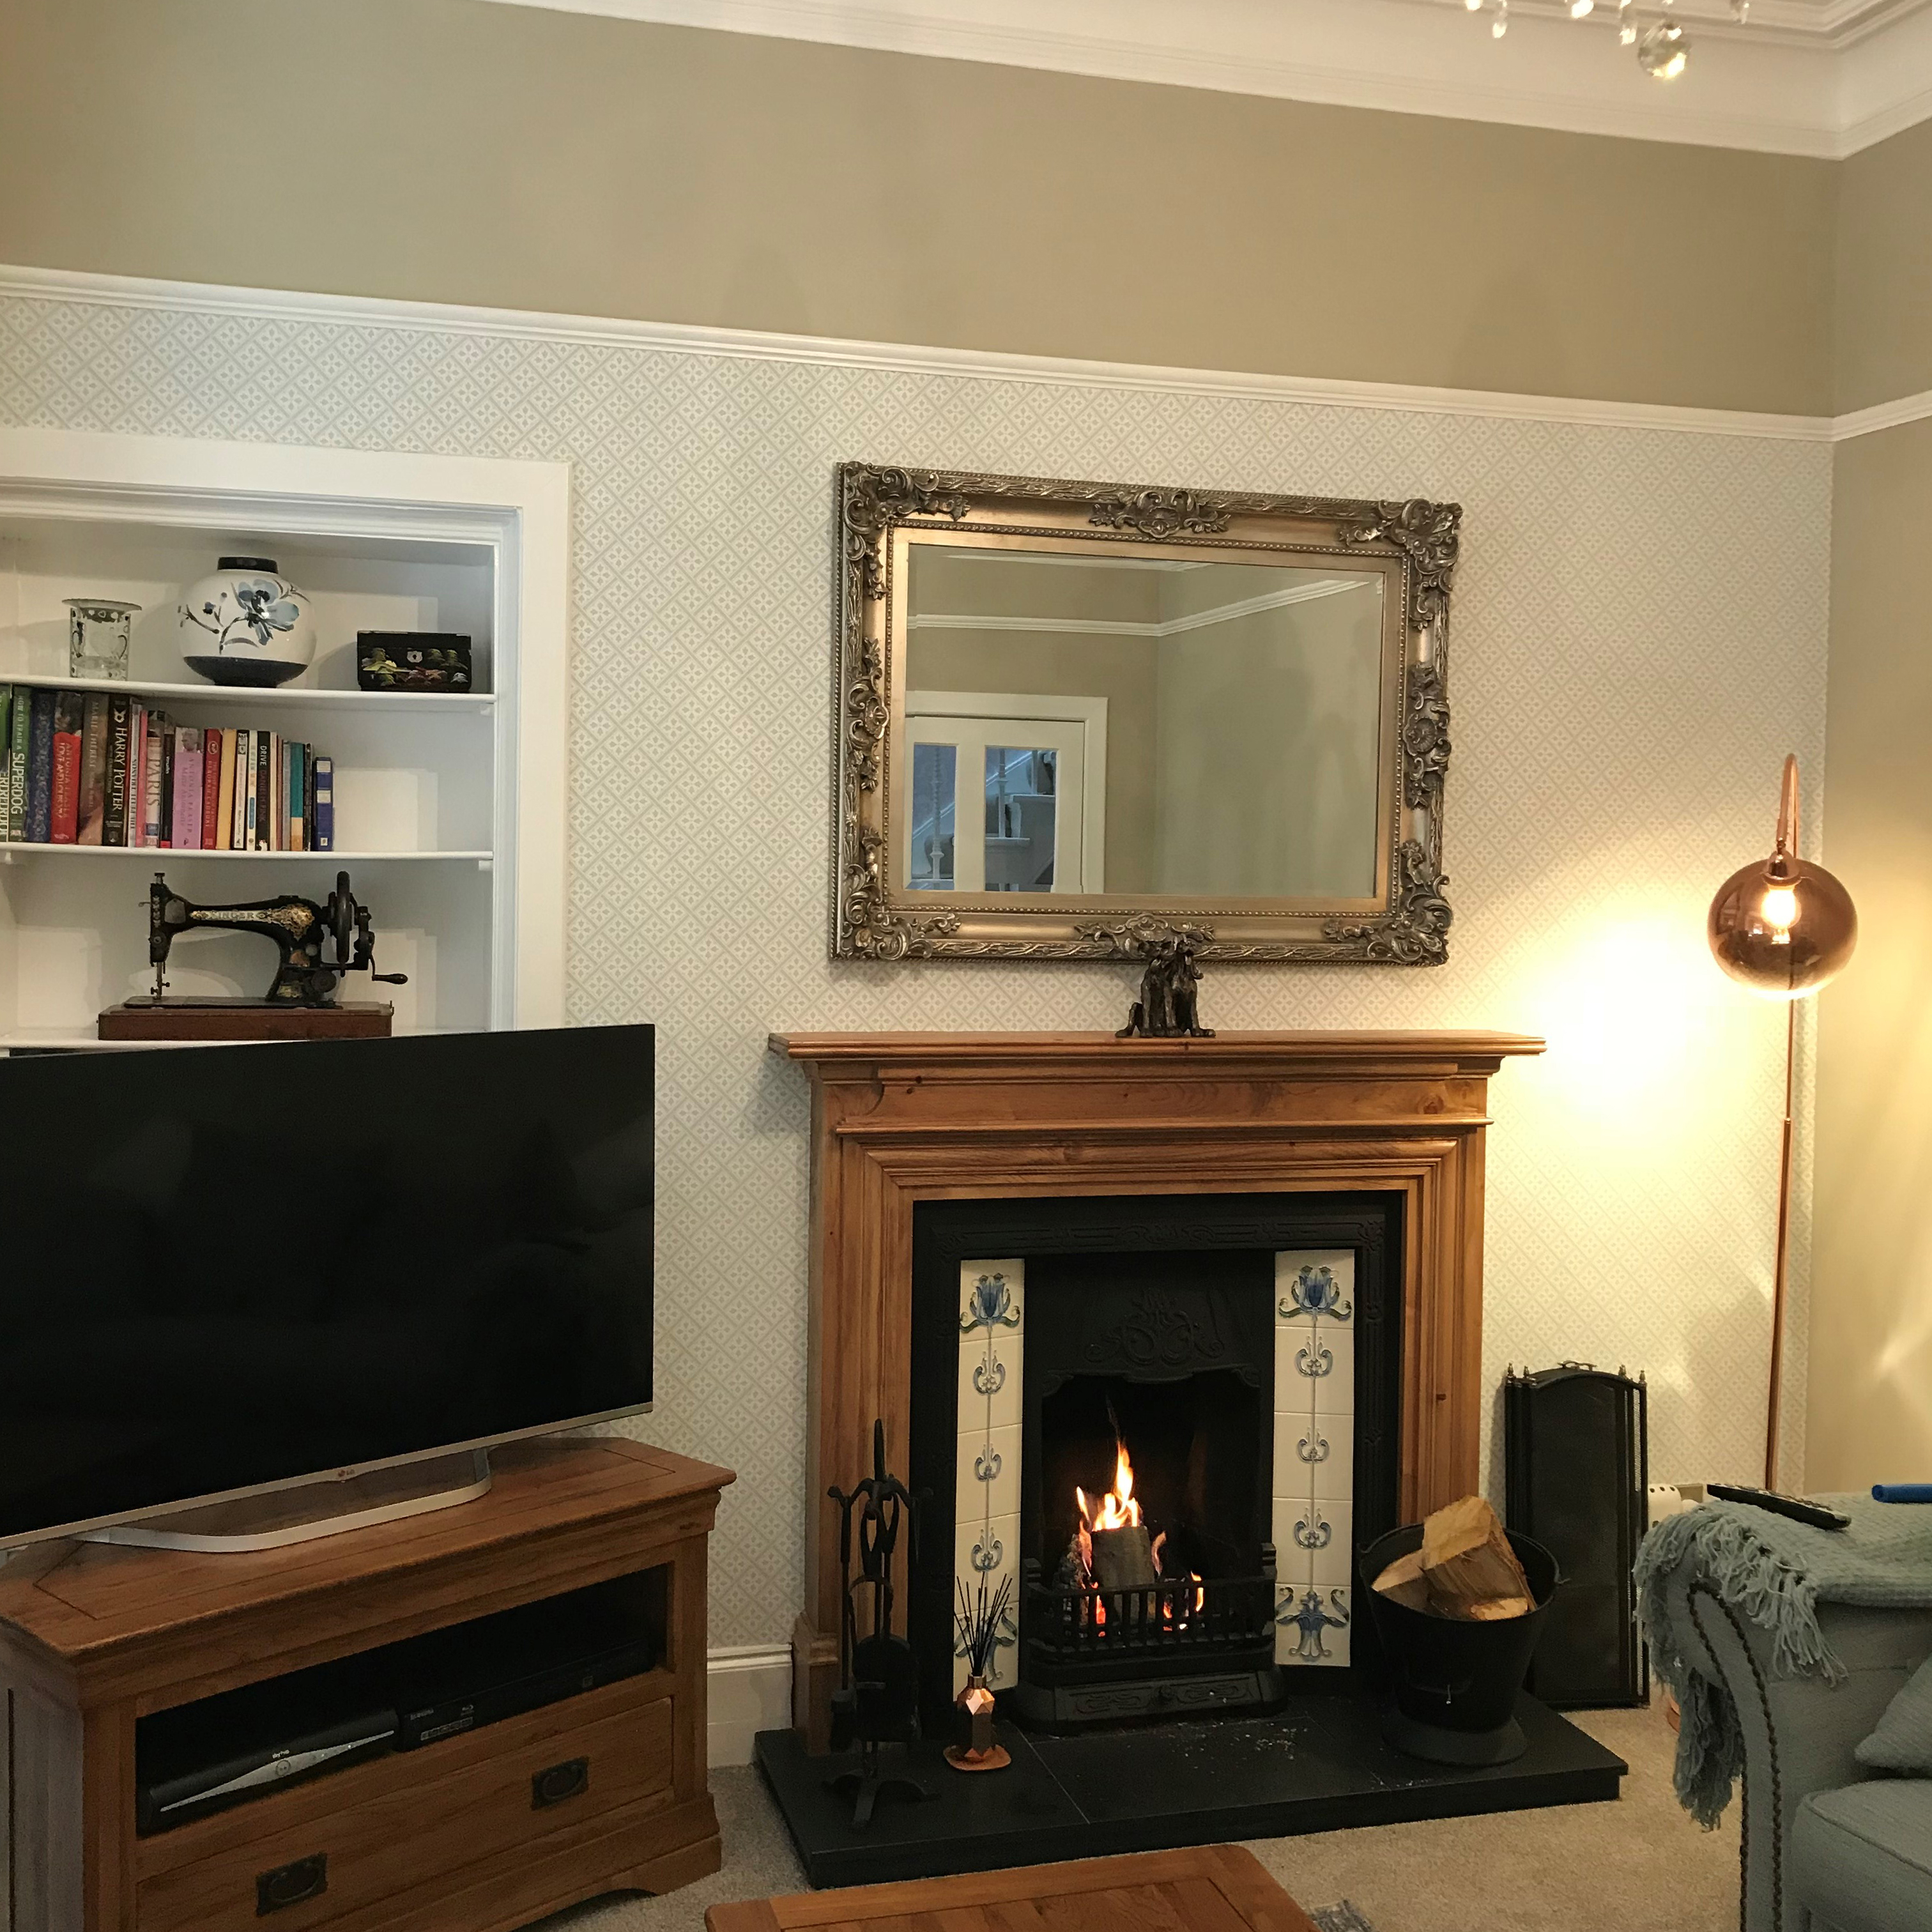 Fireplace Installation For A Besotted Customer